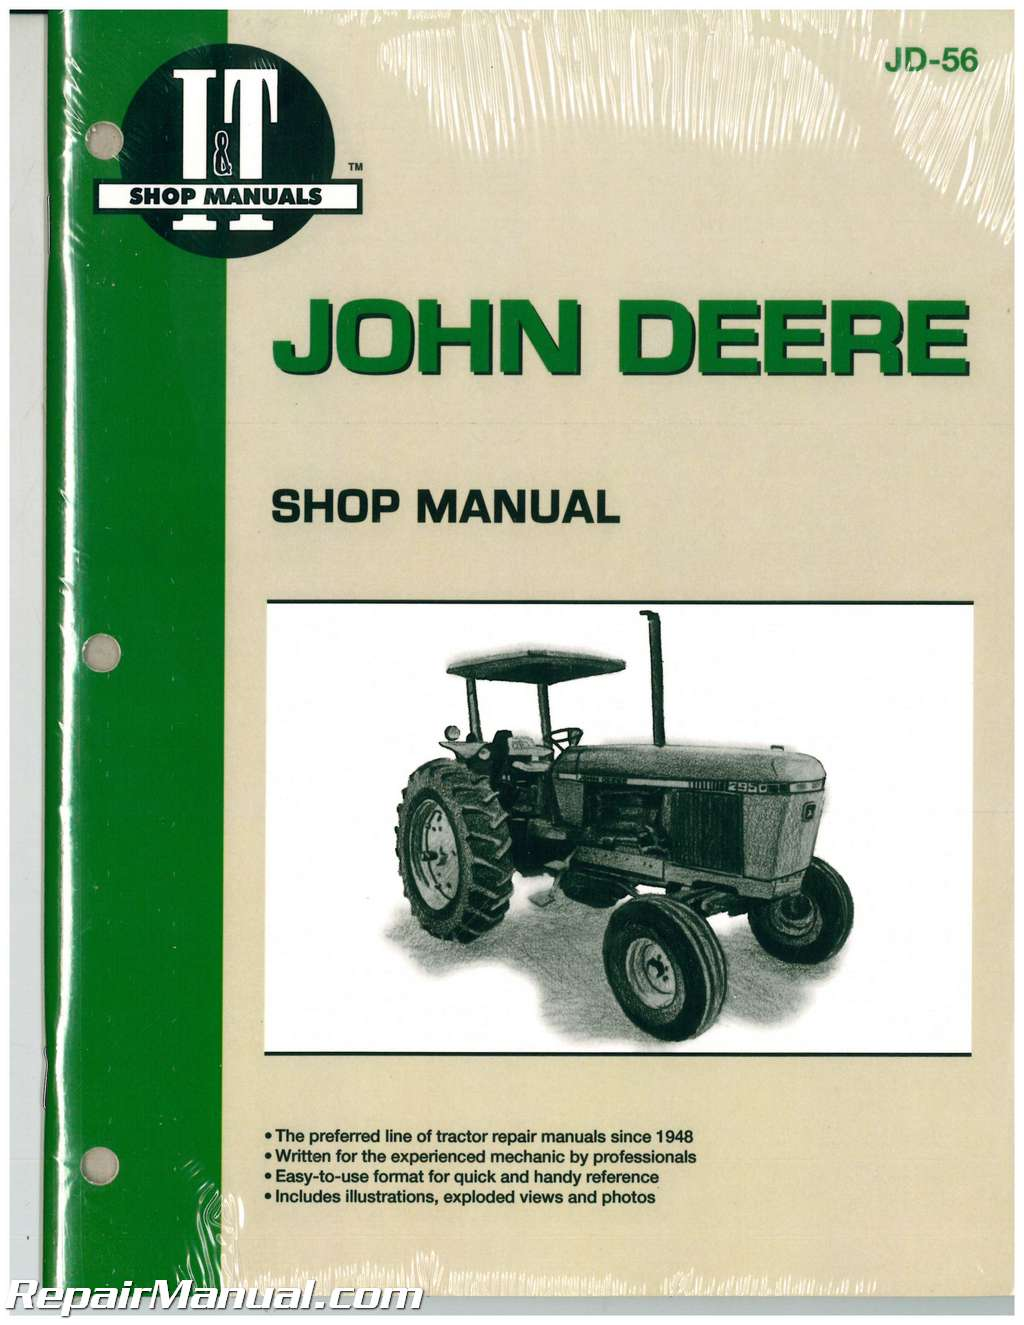 wiring diagram for 1020 john deere the wiring diagram john deere 1020 wiring diagram vidim wiring diagram wiring diagram